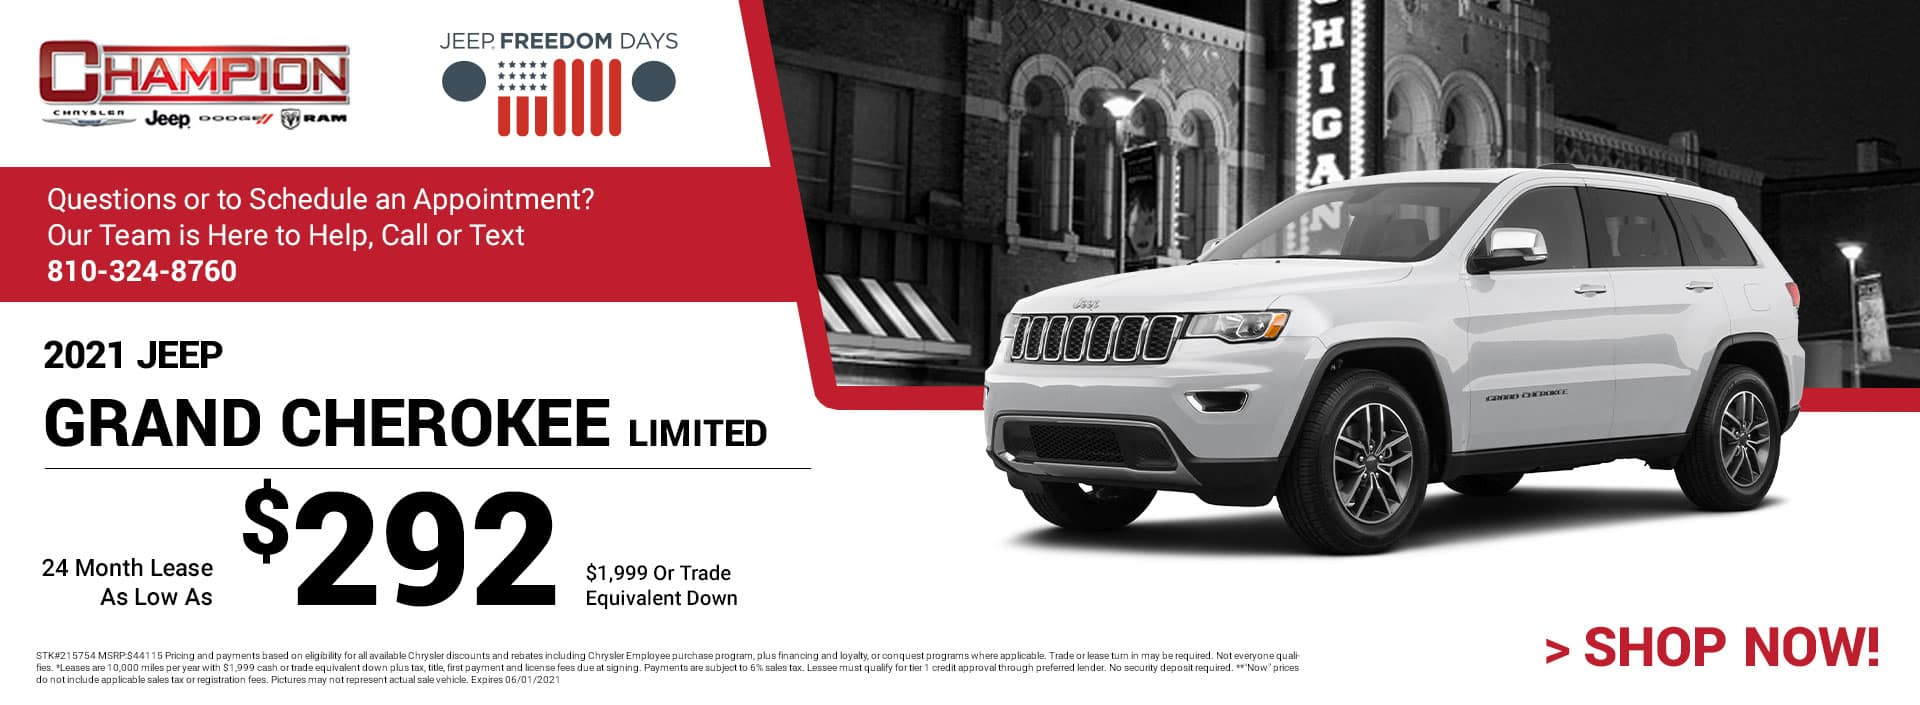 2021 Jeep Grand Cherokee Limited 215754 $44,115 $1,999 or Trade Equivalent Down 24 $292